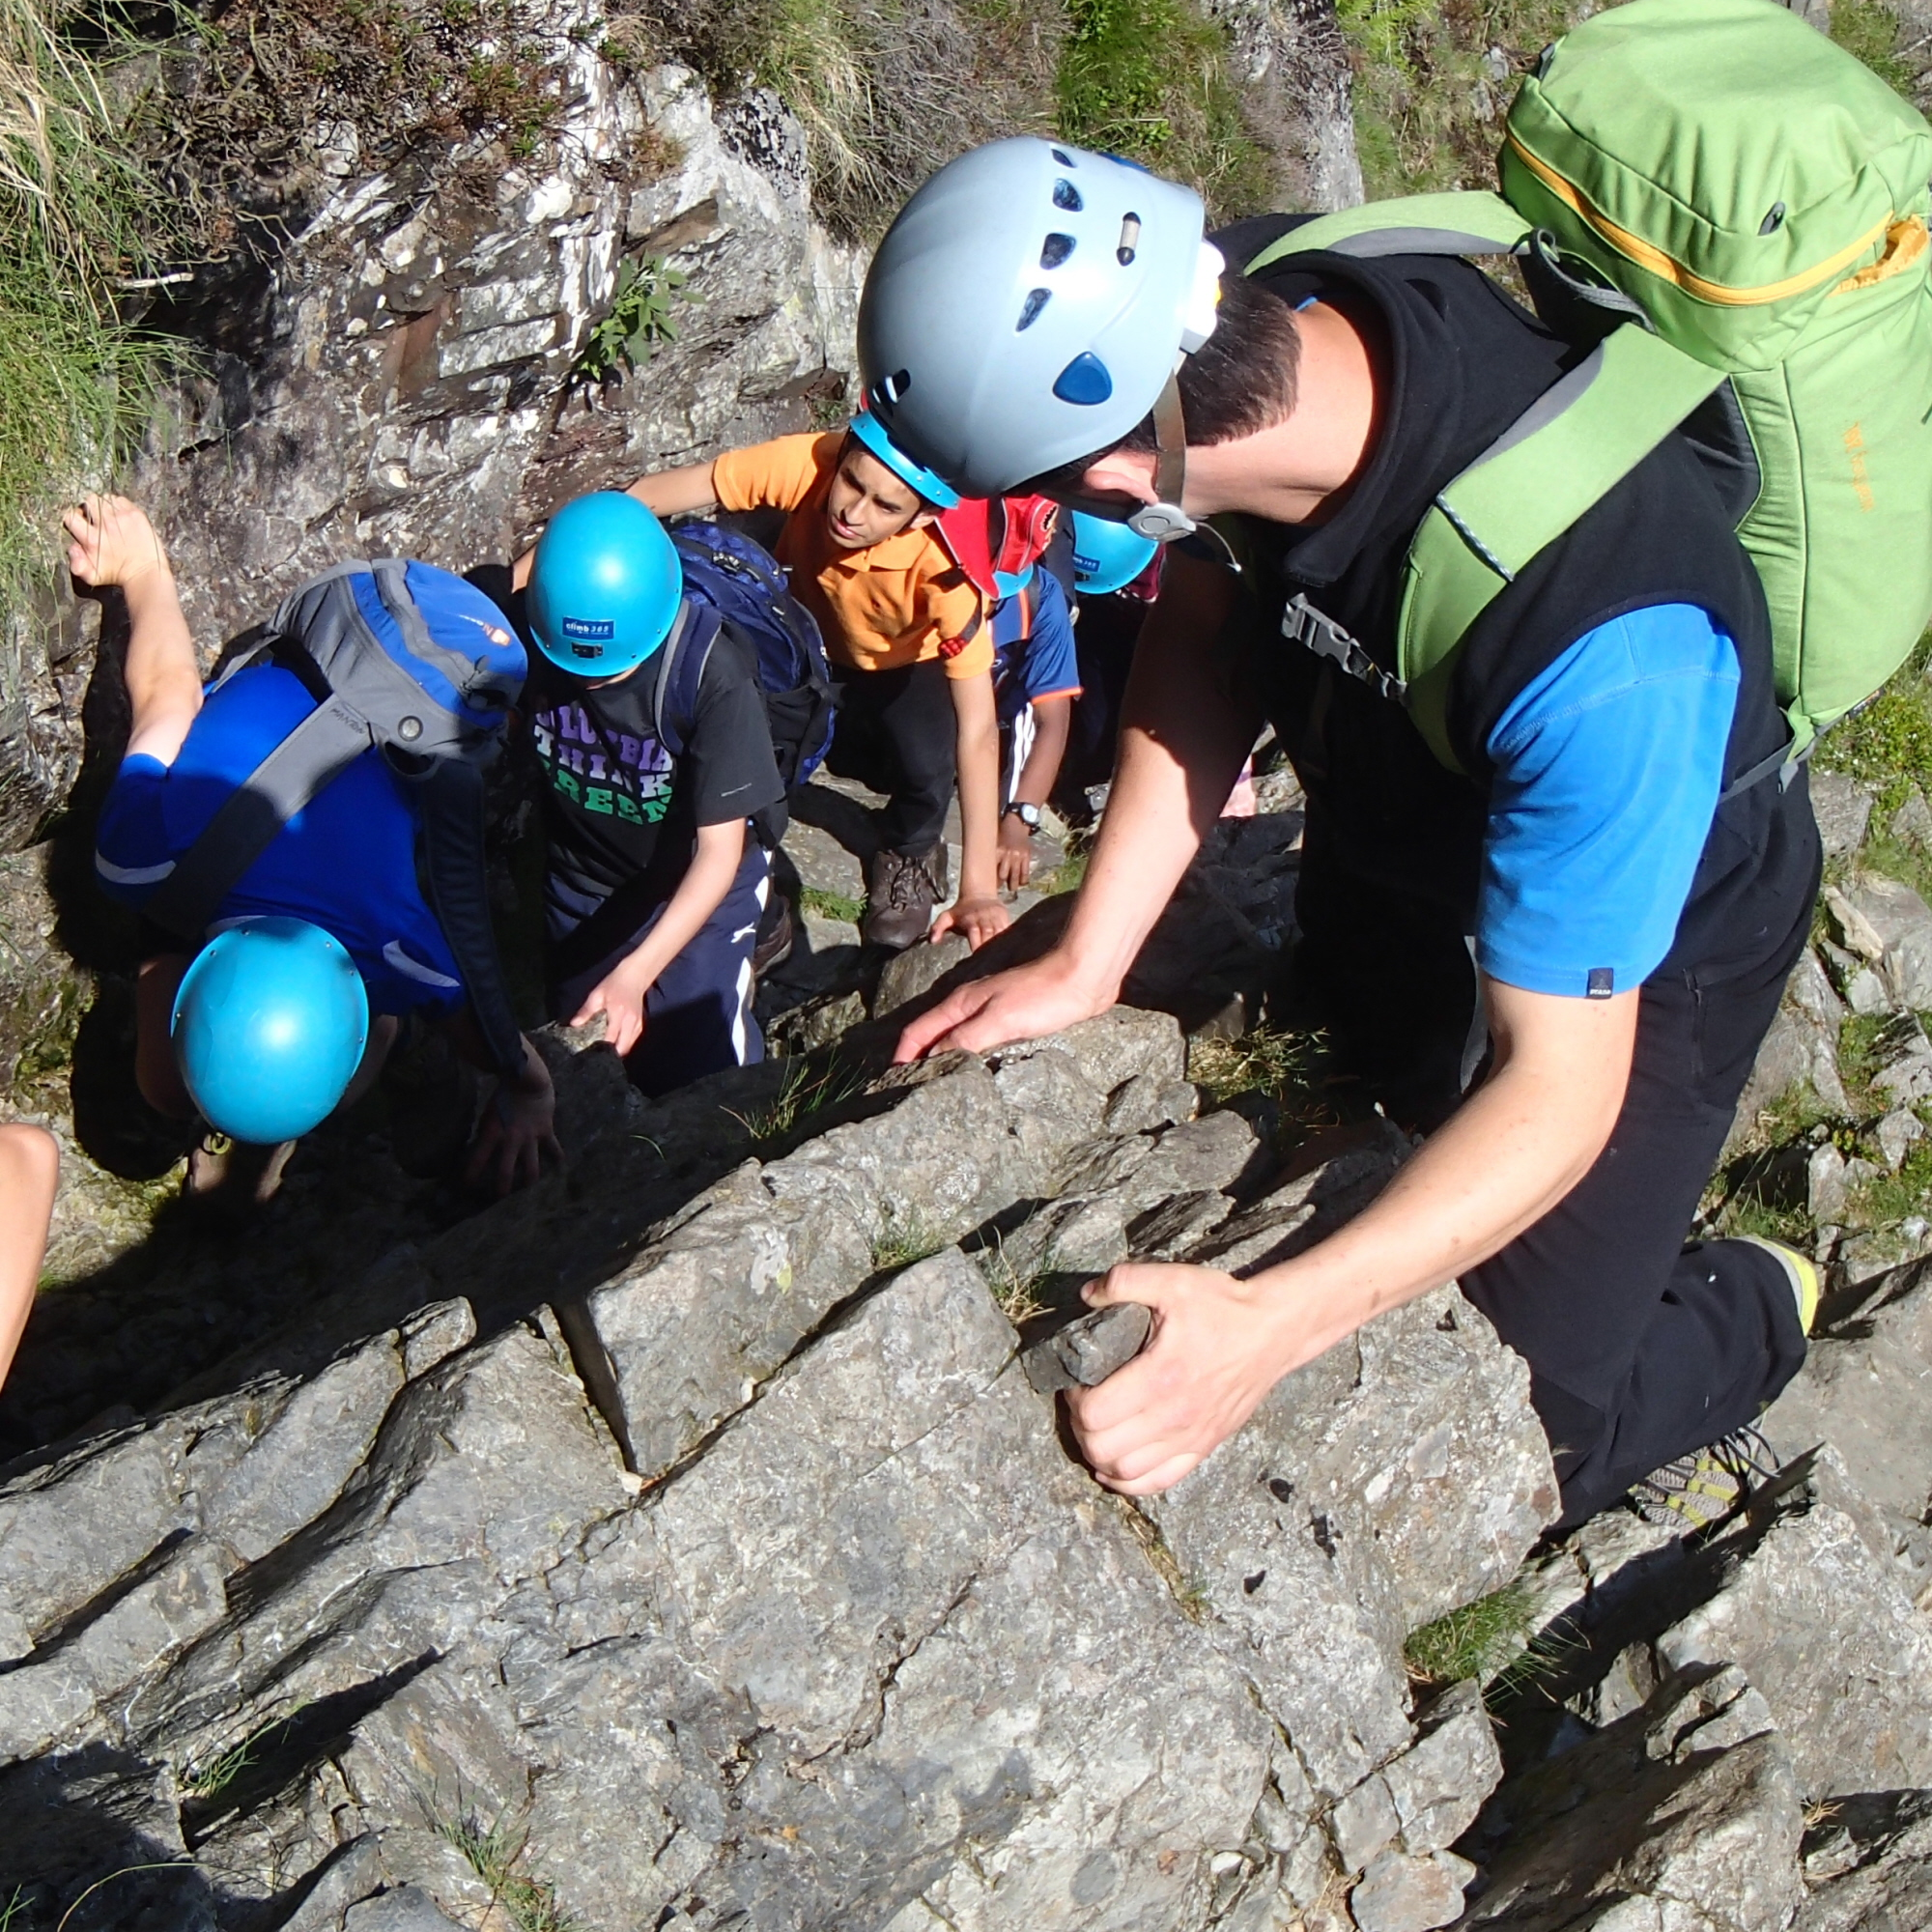 Mountaineering & scrambling